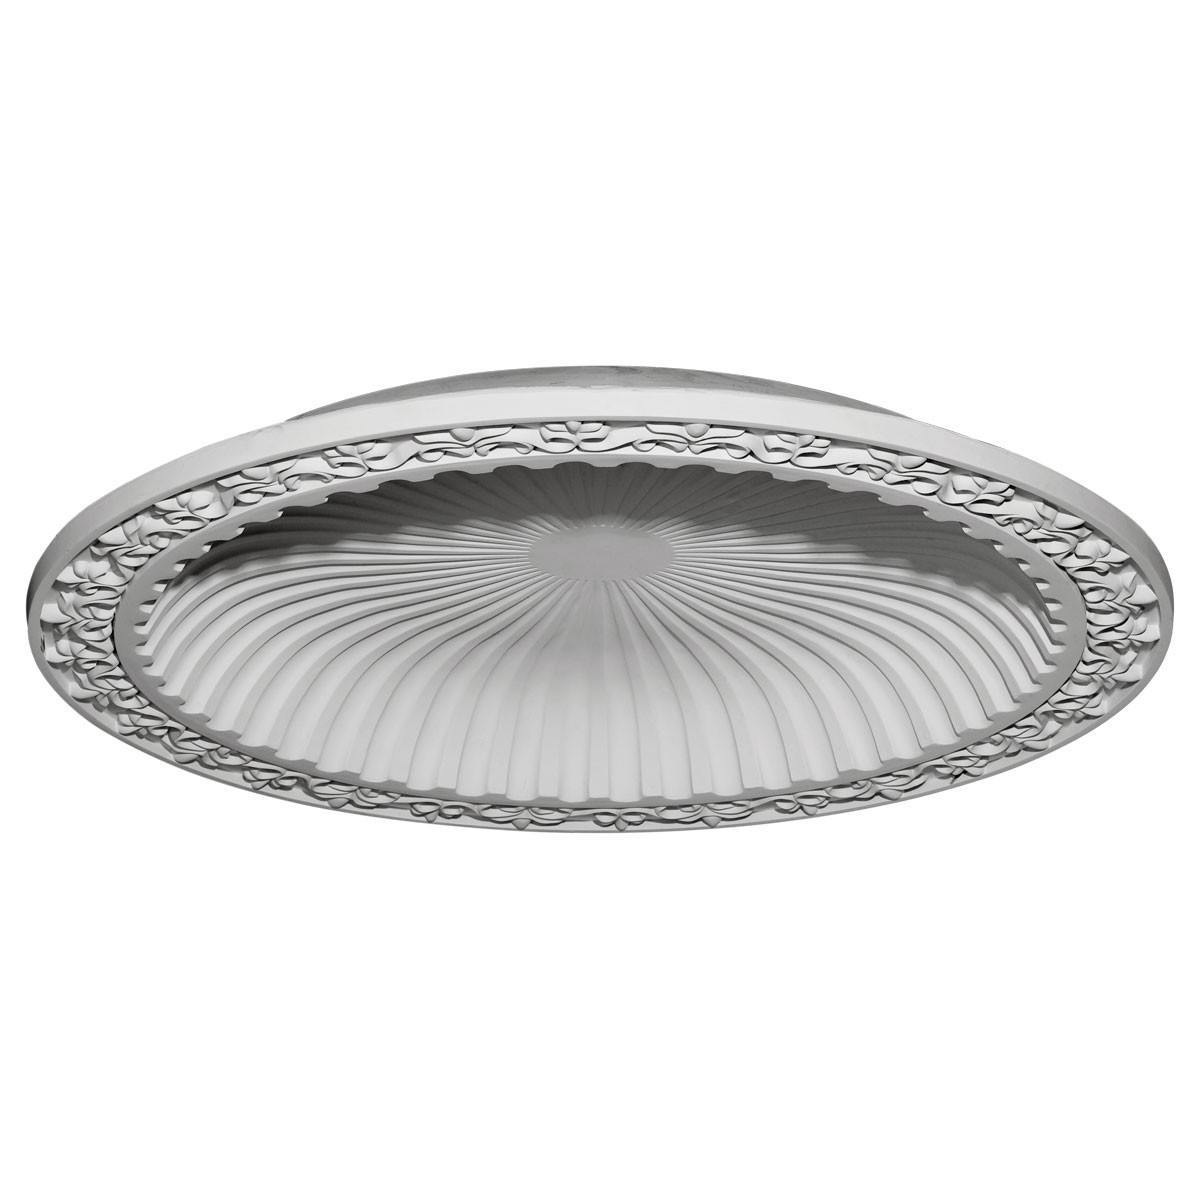 "EM-DOME47MI - 47""OD x 38 3/8""ID x 5 1/4""D Milton Recessed Mount Ceiling Dome (41"" Diameter x  4 5/8""D Rough Opening)"